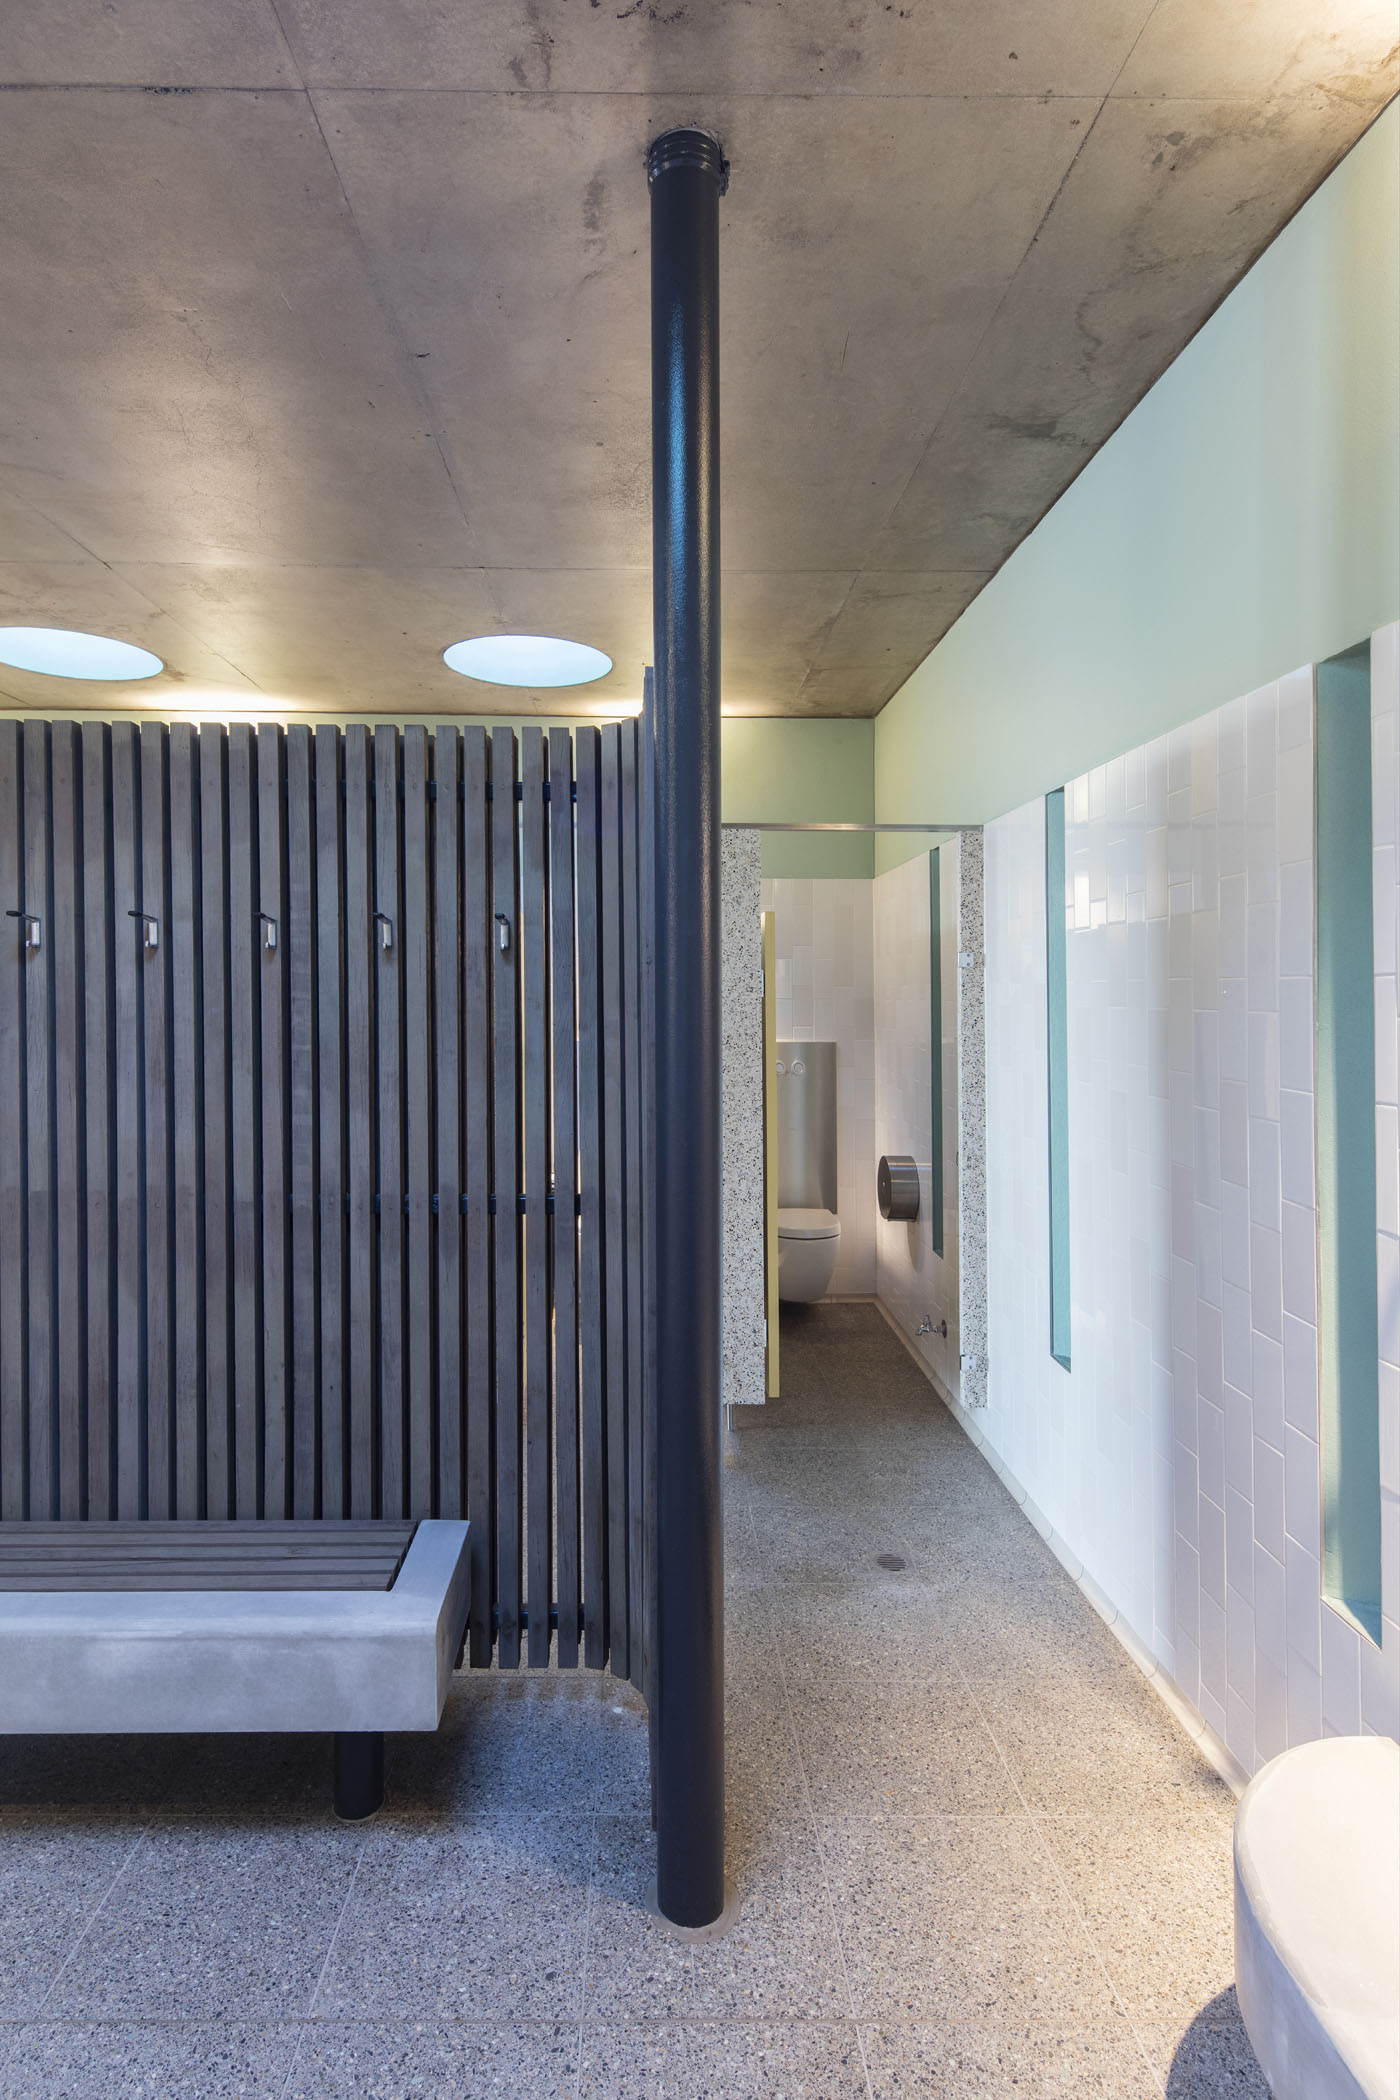 North Bondi Amenities, a public project by award winning Sam Crawford Architects. Interior change rooms use timber screens.